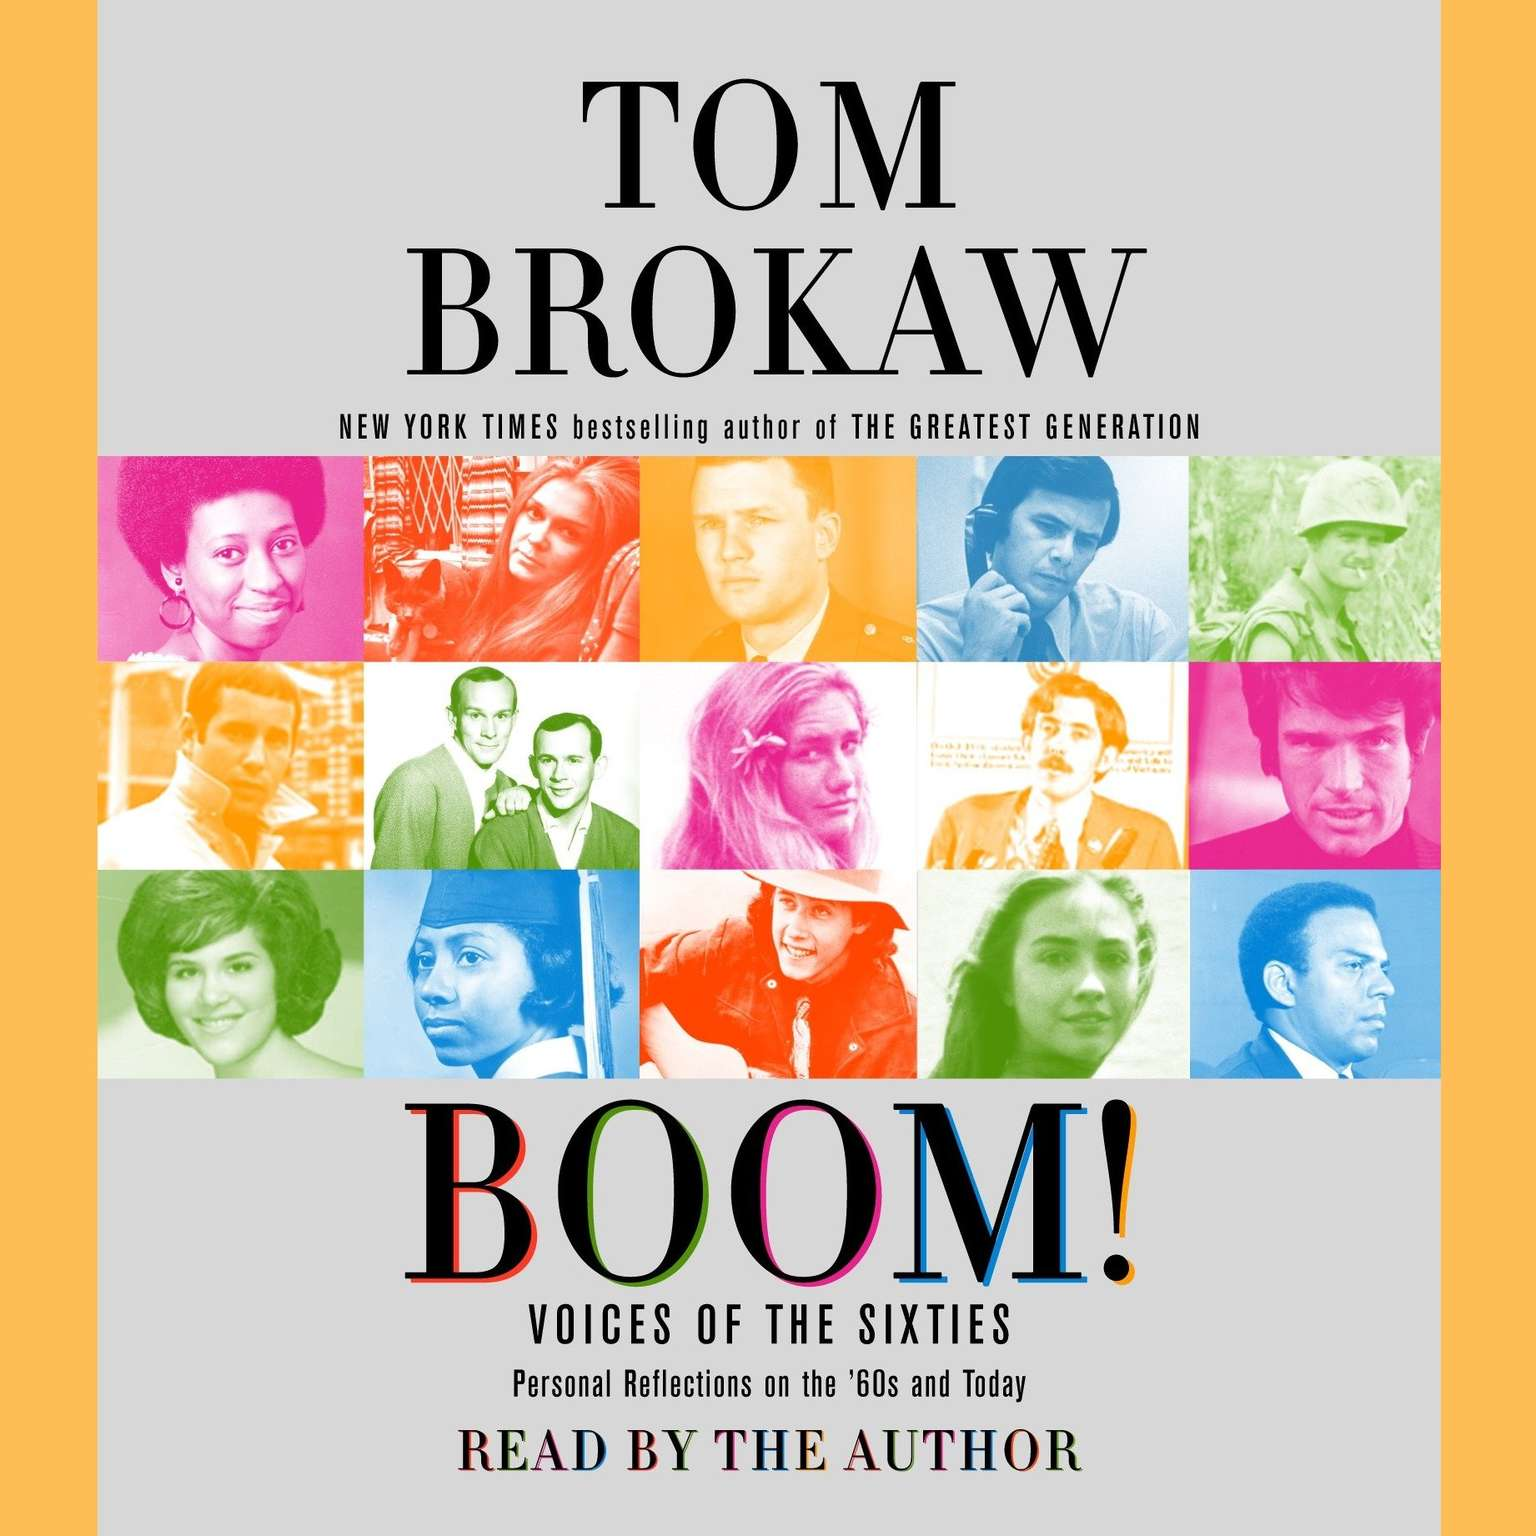 Printable Boom!: Voices of the Sixties Personal Reflections on the '60s and Today Audiobook Cover Art